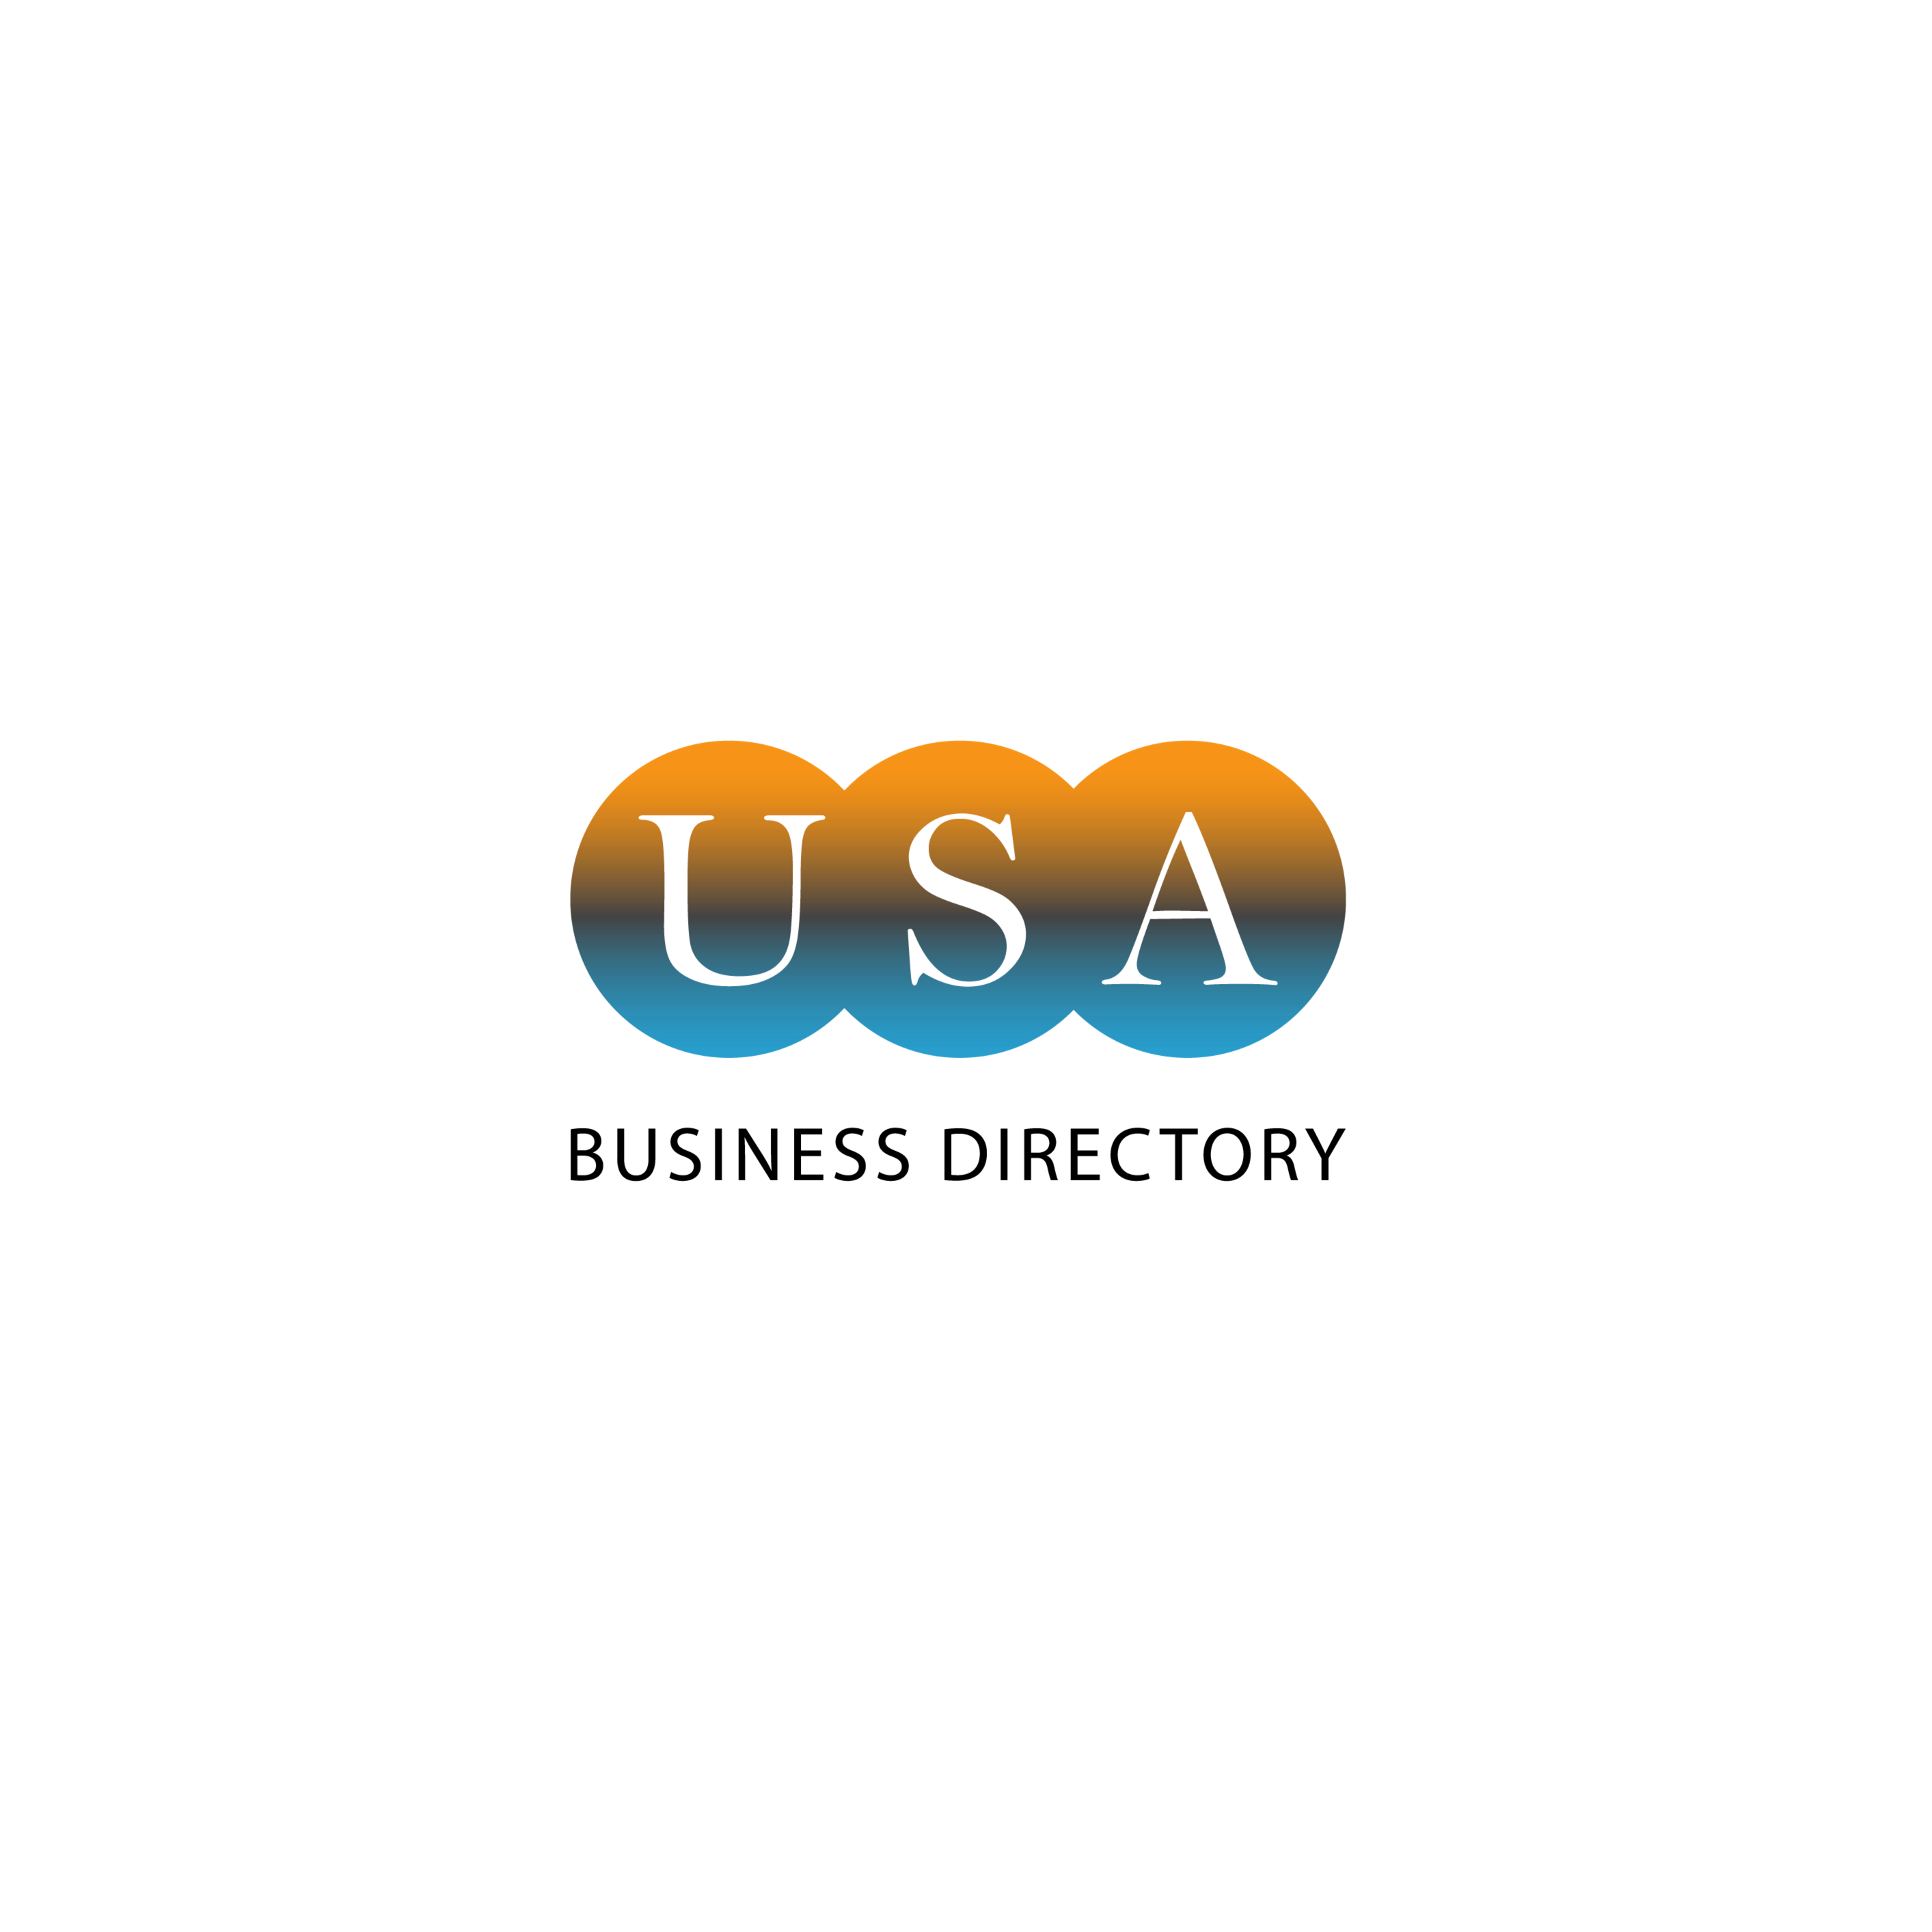 USA Business Directory